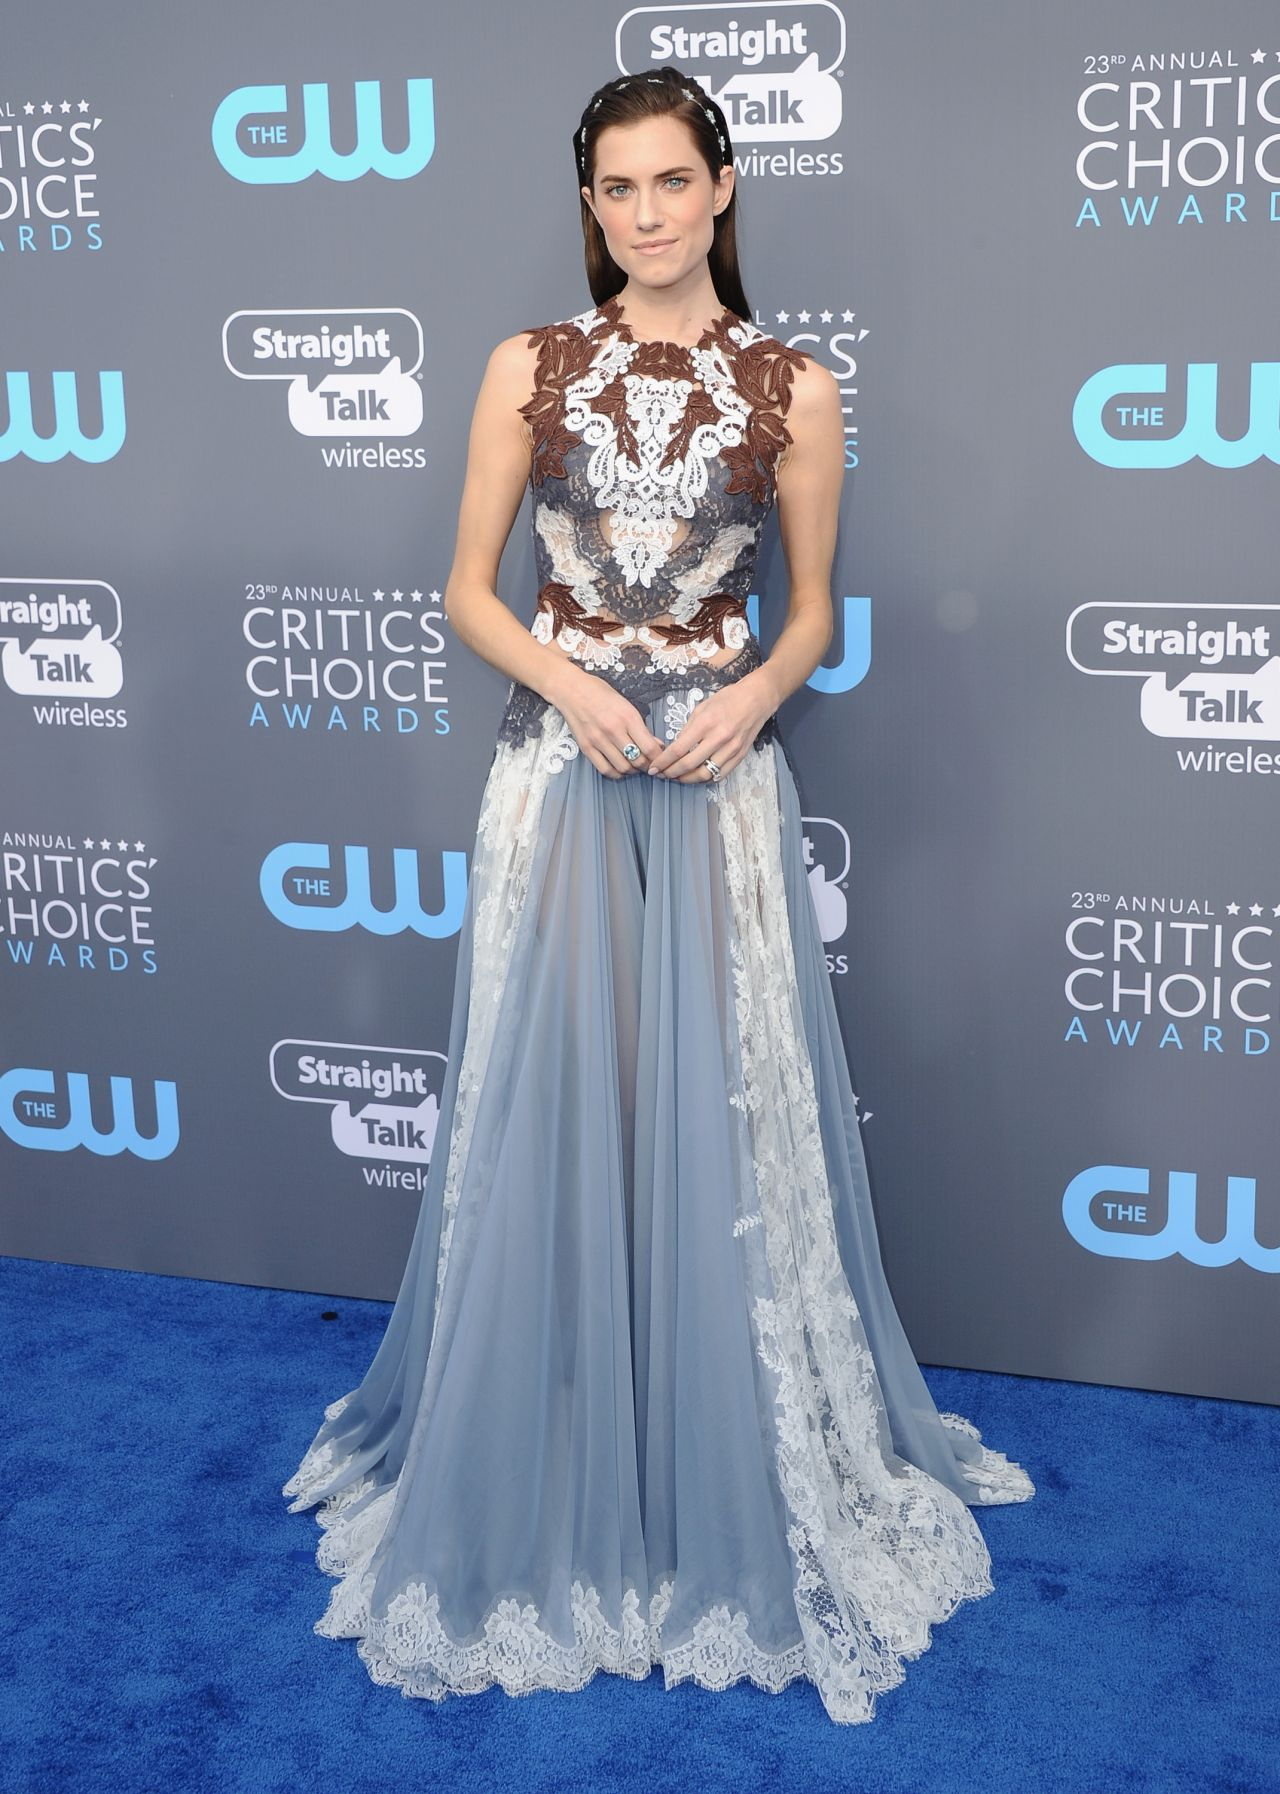 http://celebmafia.com/wp-content/uploads/2018/01/allison-williams-2018-critics-choice-awards-1.jpg